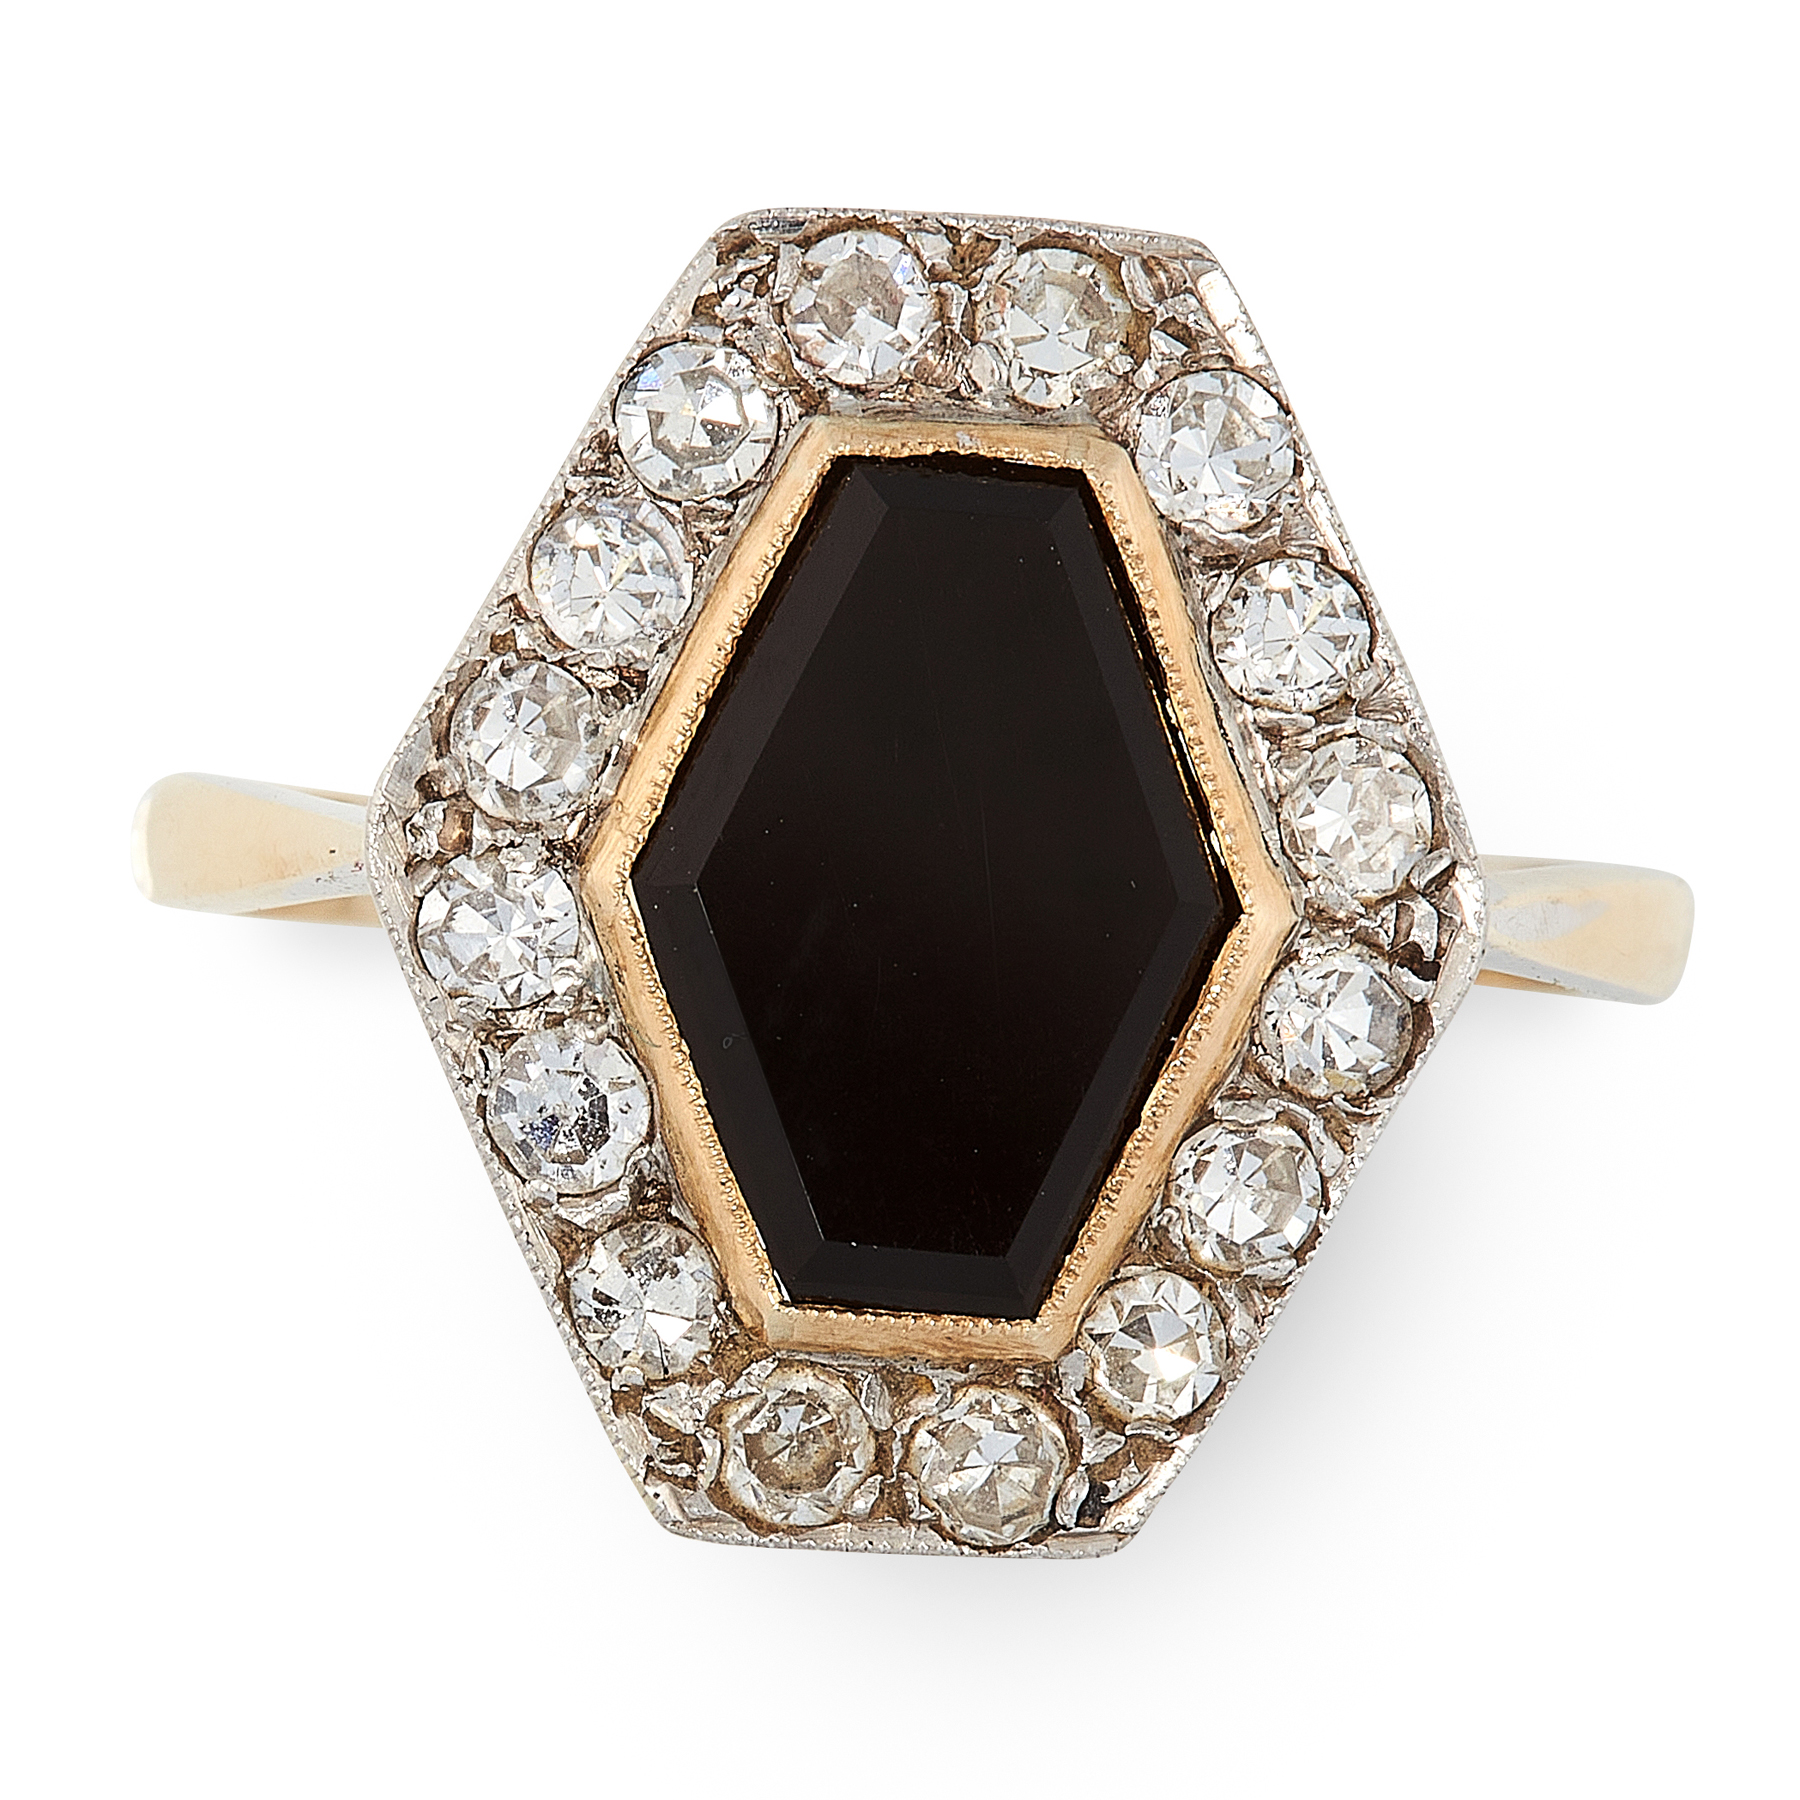 AN ART DECO ONYX AND DIAMOND RING in 18ct yellow gold and platinum, set with a hexagonal polished